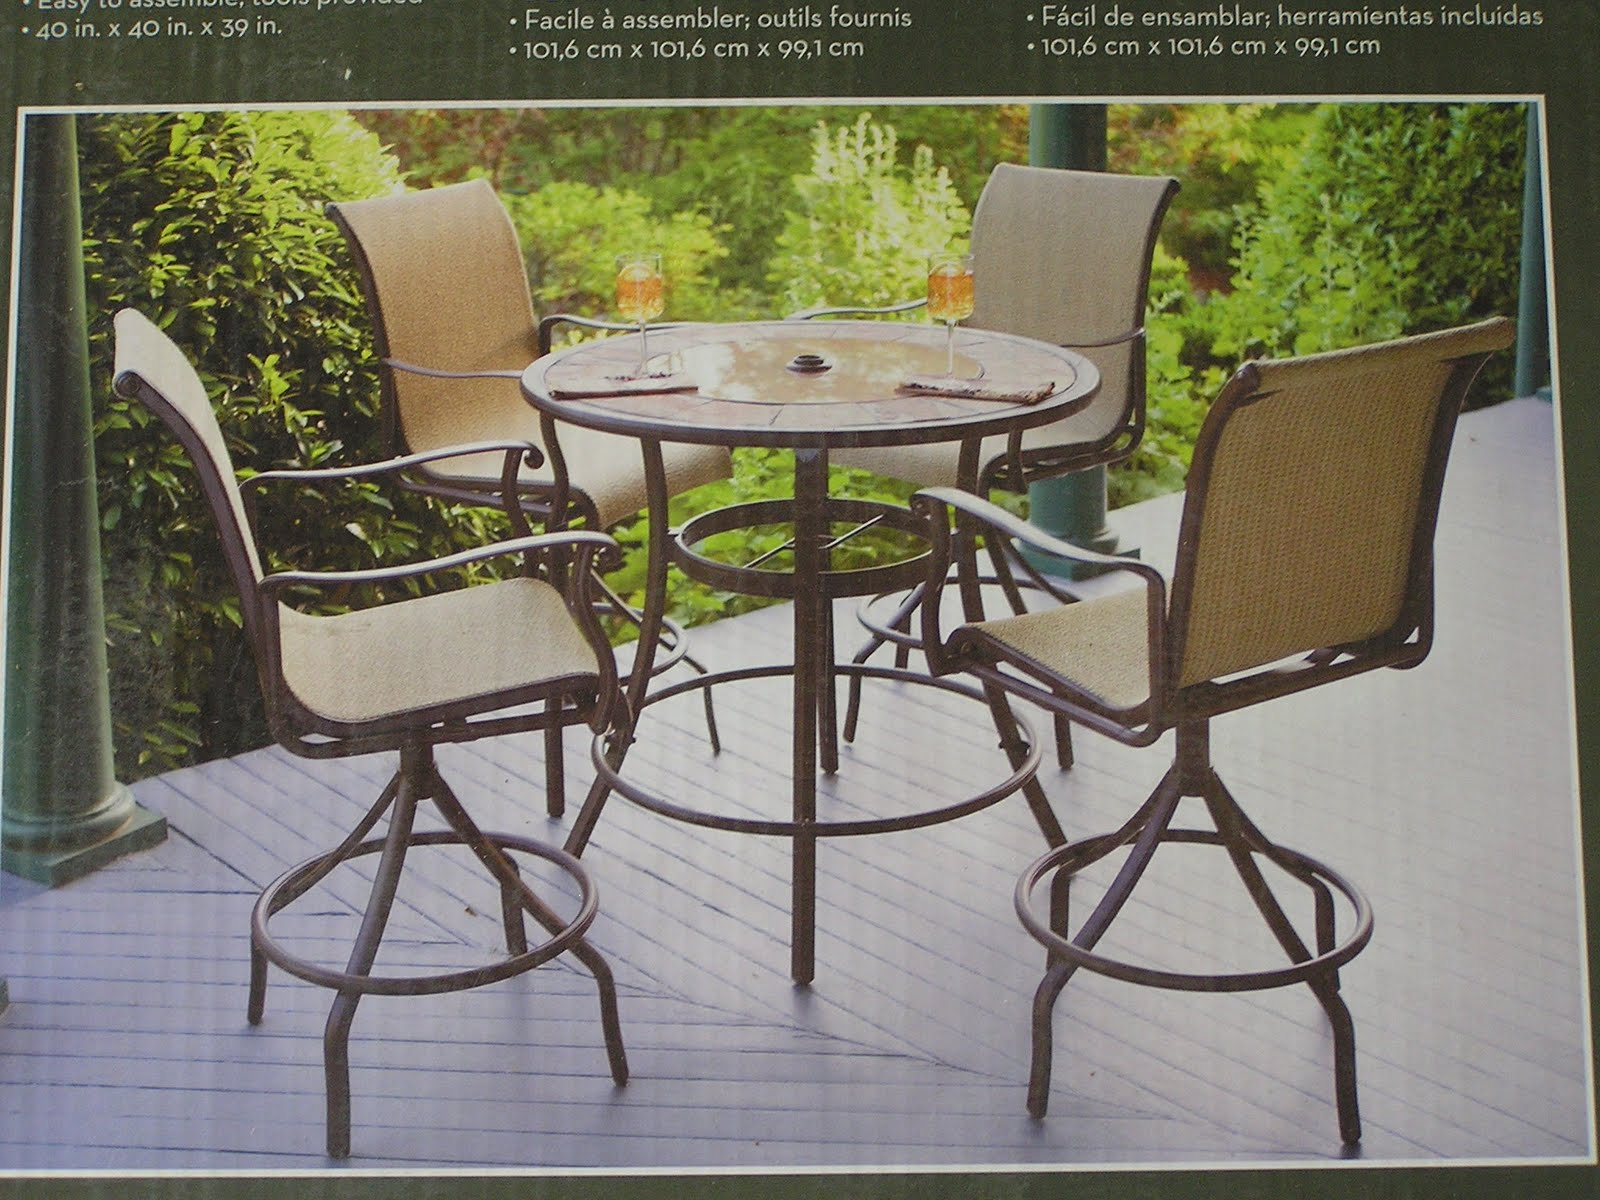 Patio table set patio design ideas for Patio furniture table